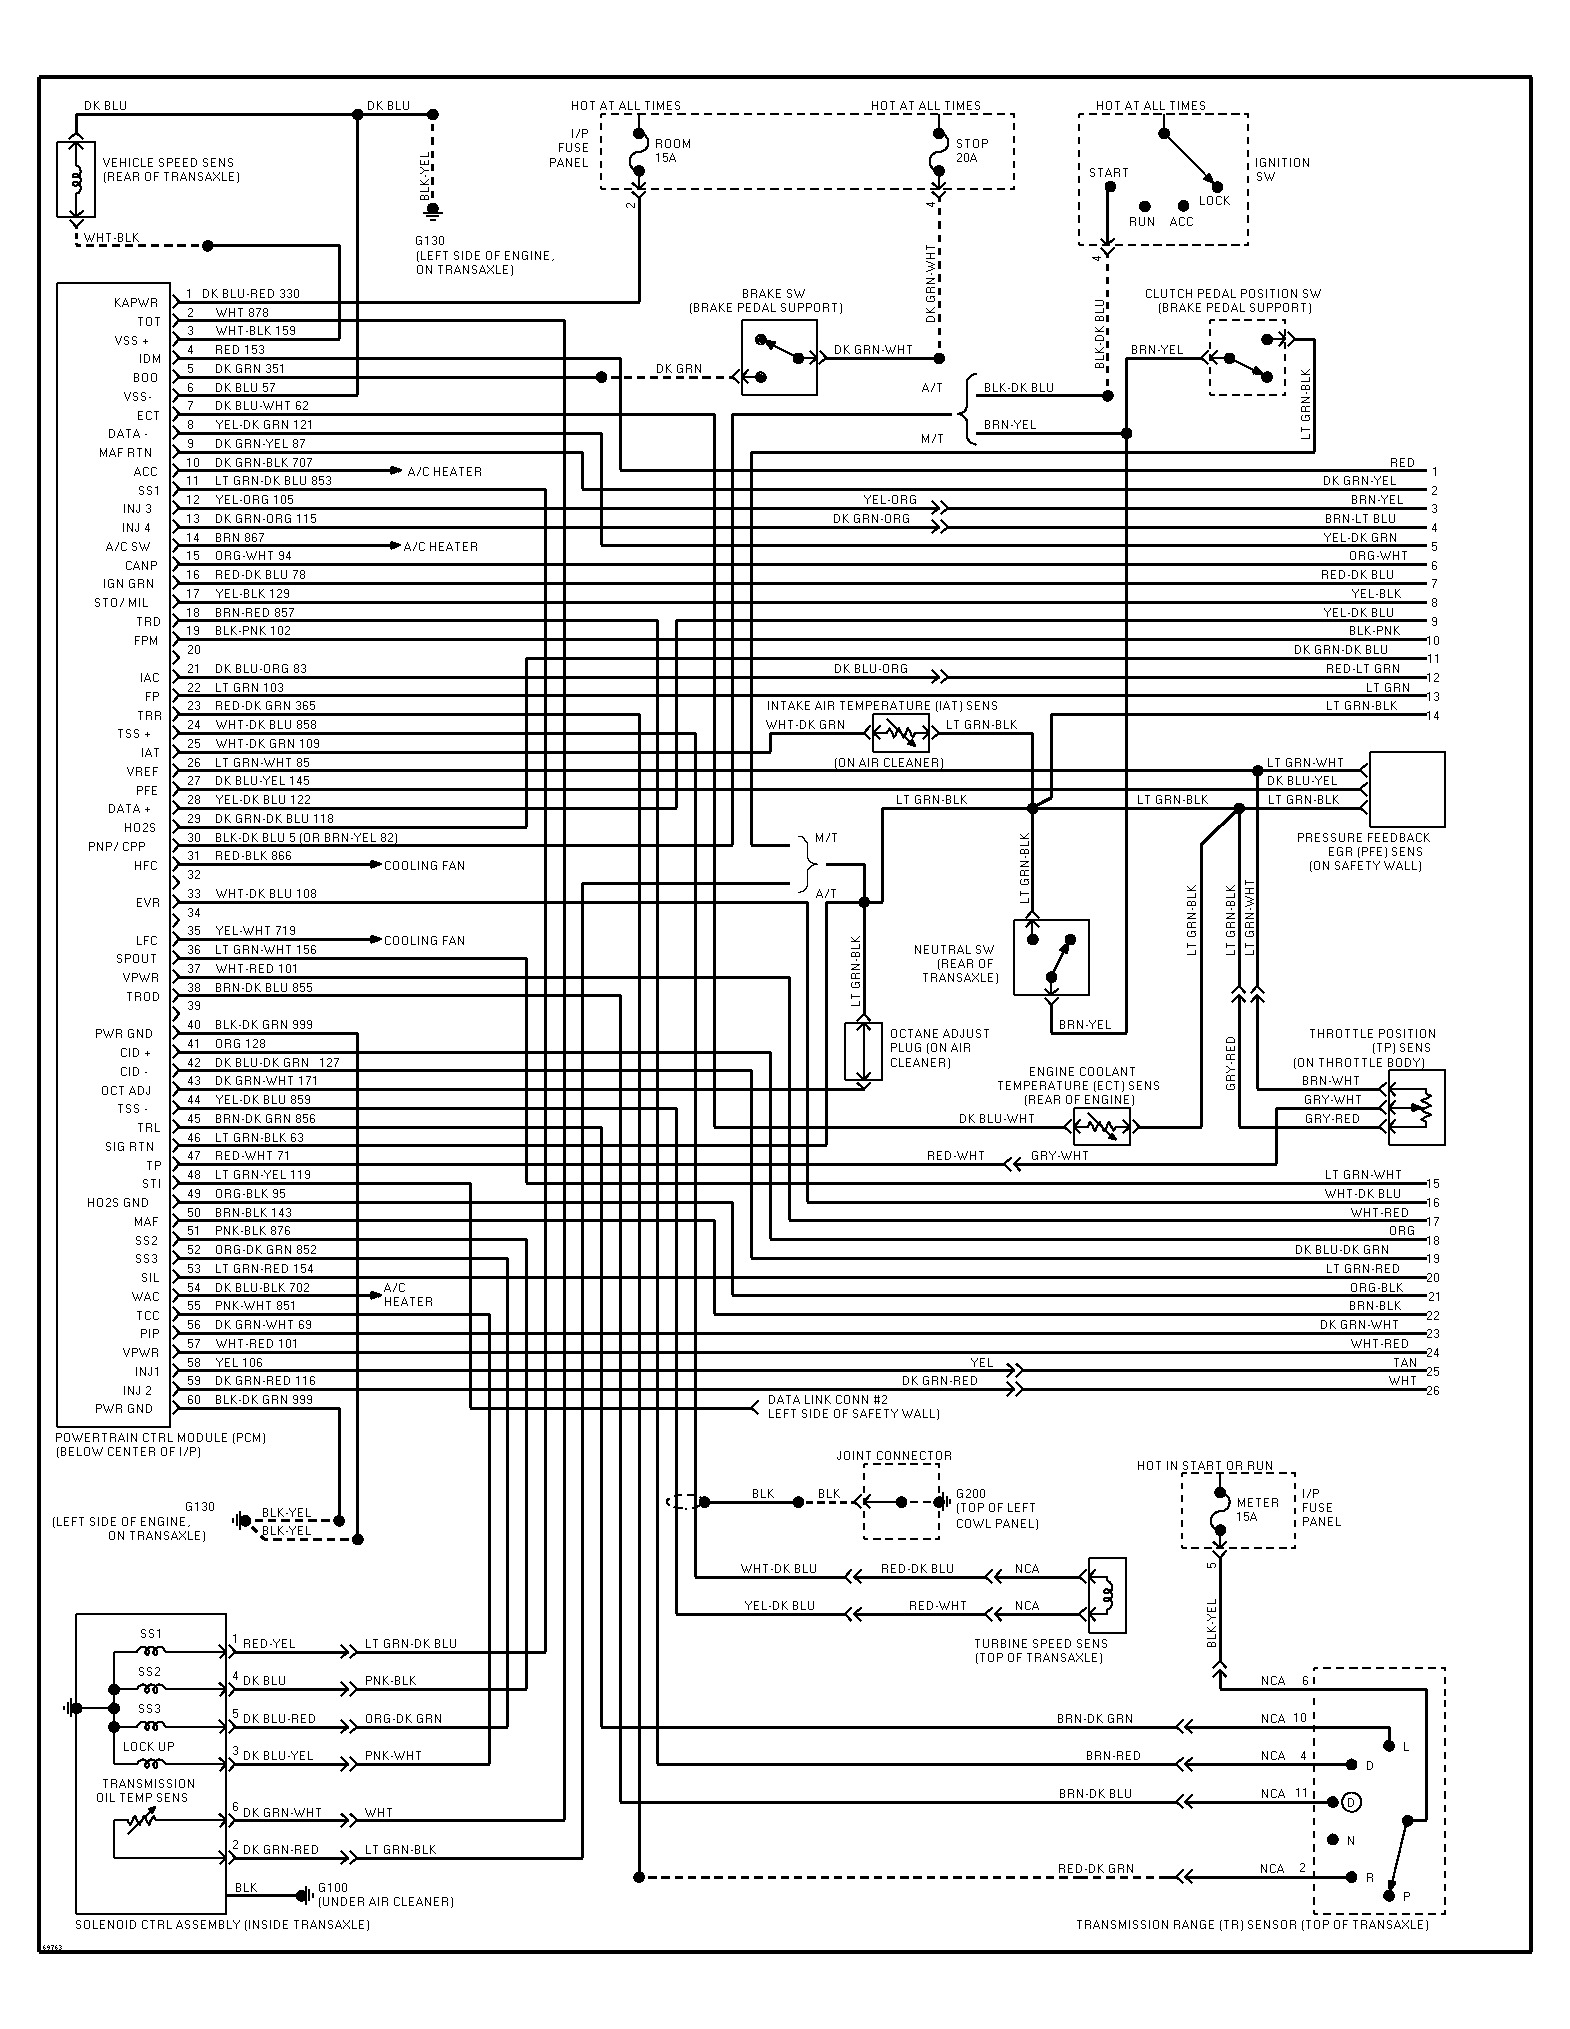 original 1995 ford escort wiring diagram i need to find a color coded ford escort wiring diagram at sewacar.co